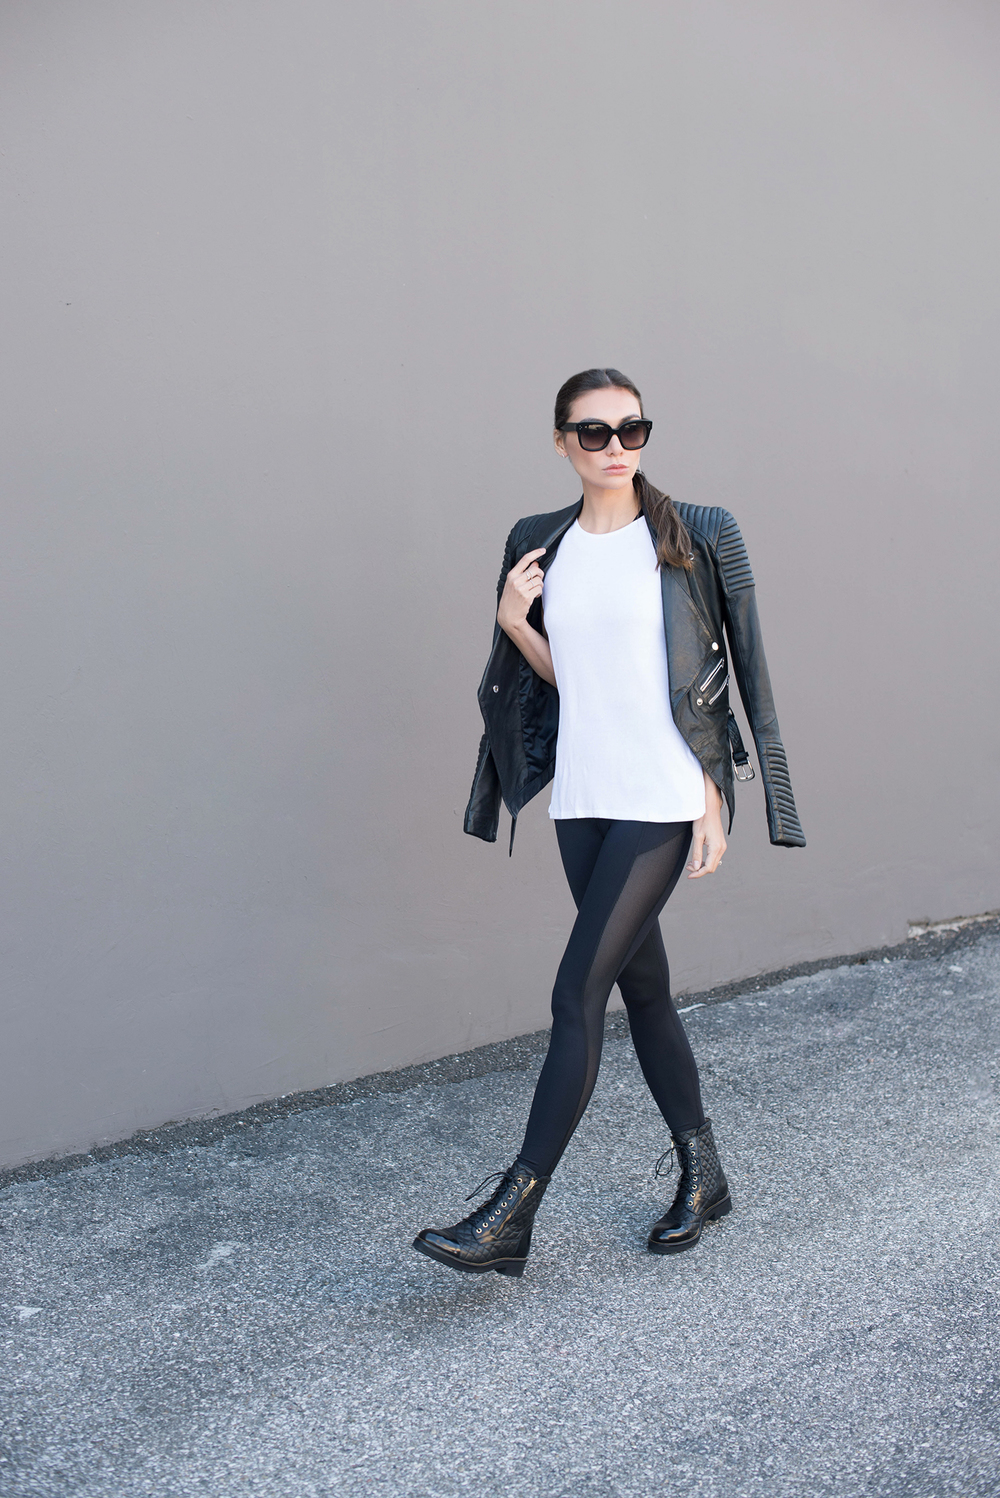 TANK  .   BRA  .   LEGGINGS  .   JACKET  .   SHOES  .   SUNGLASSES  .   HEXAGON RING  .   ORBIT PEARL AND CRYSTAL RING.    EARRINGS.